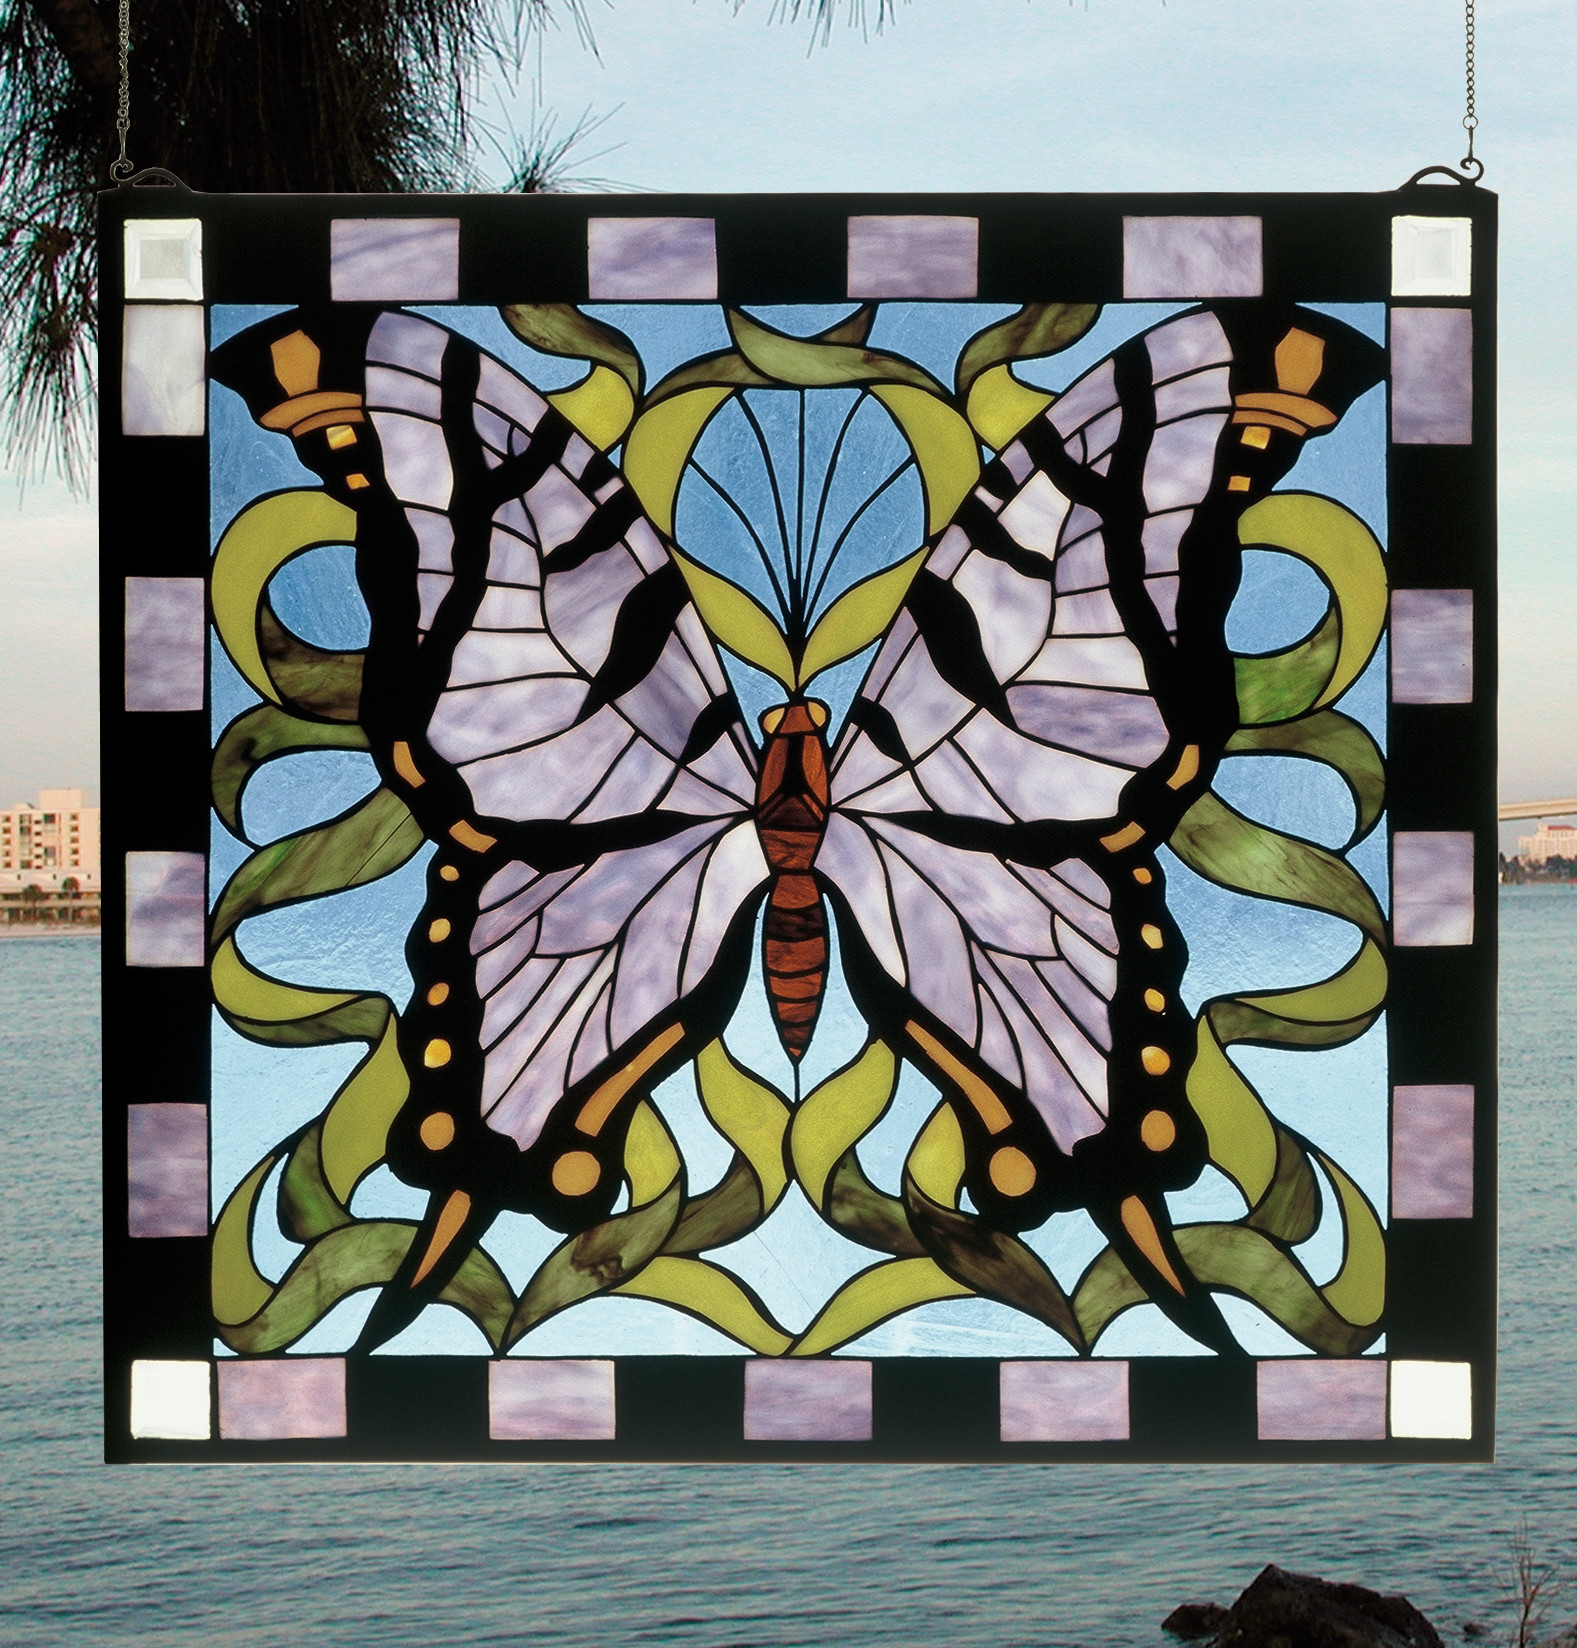 Meyda Tiffany 46464 Stained Glass Tiffany Window from the Garden Friends Collection